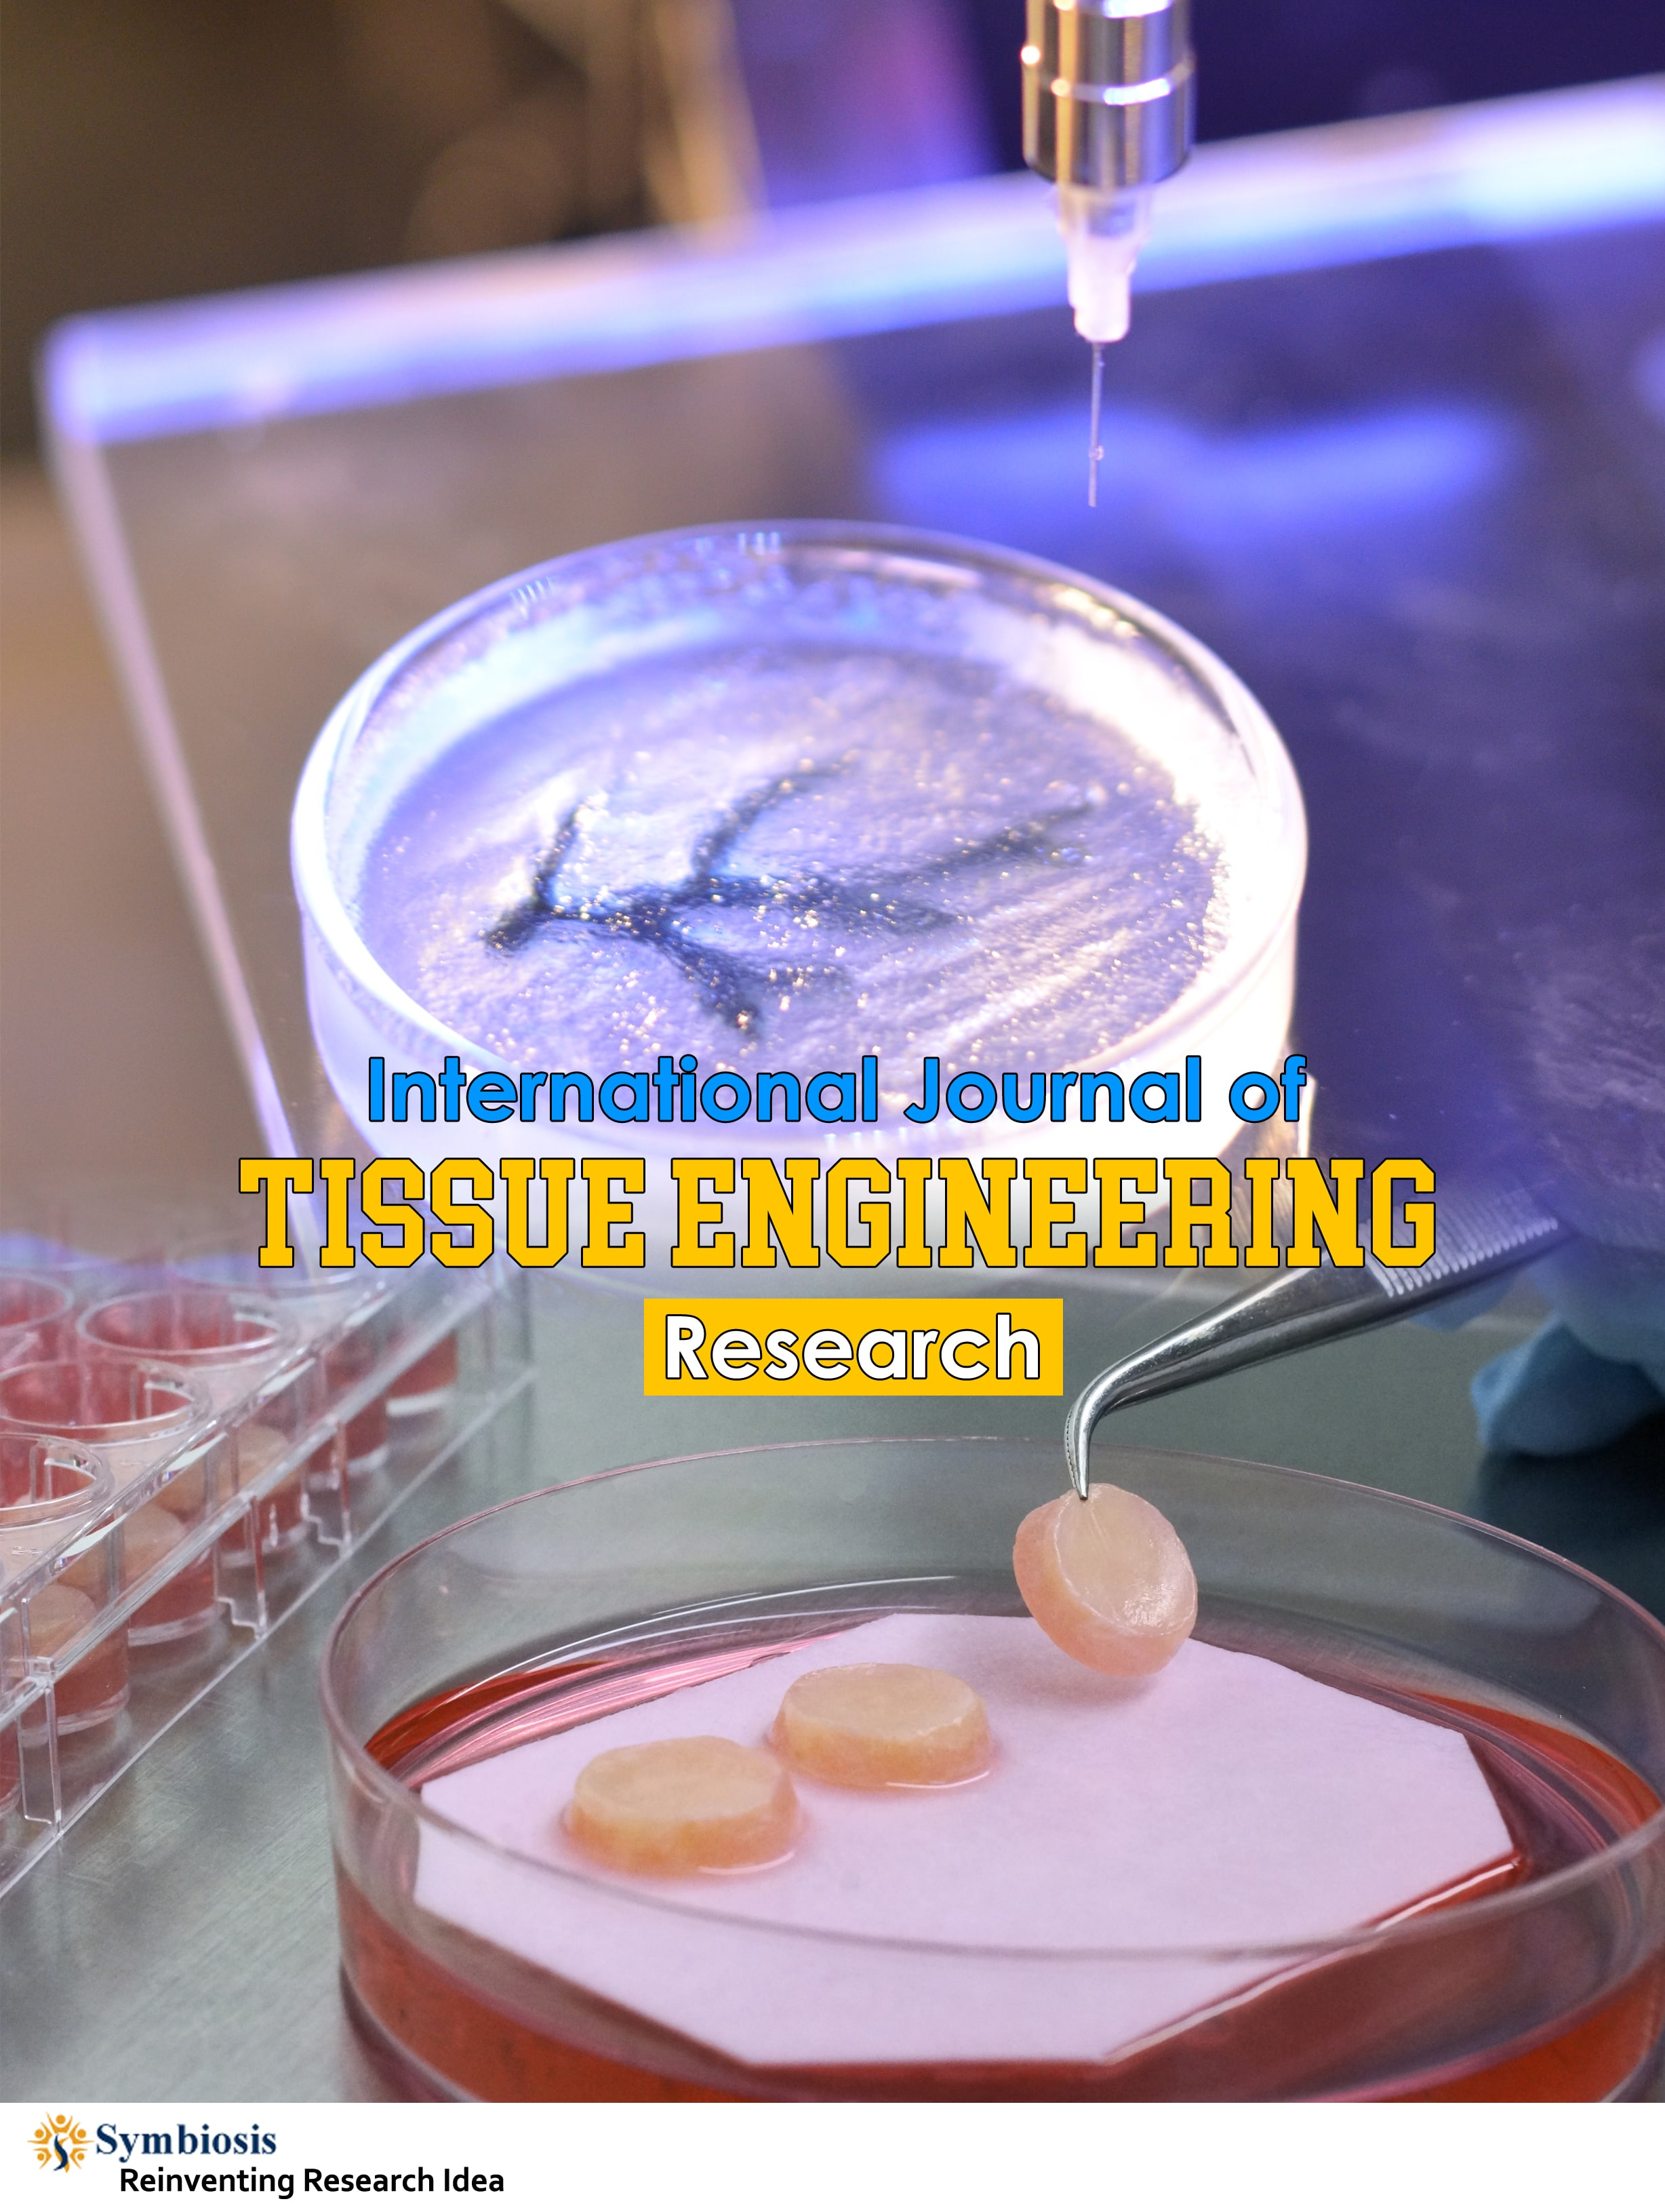 International Journal of Tissue Engineering Research